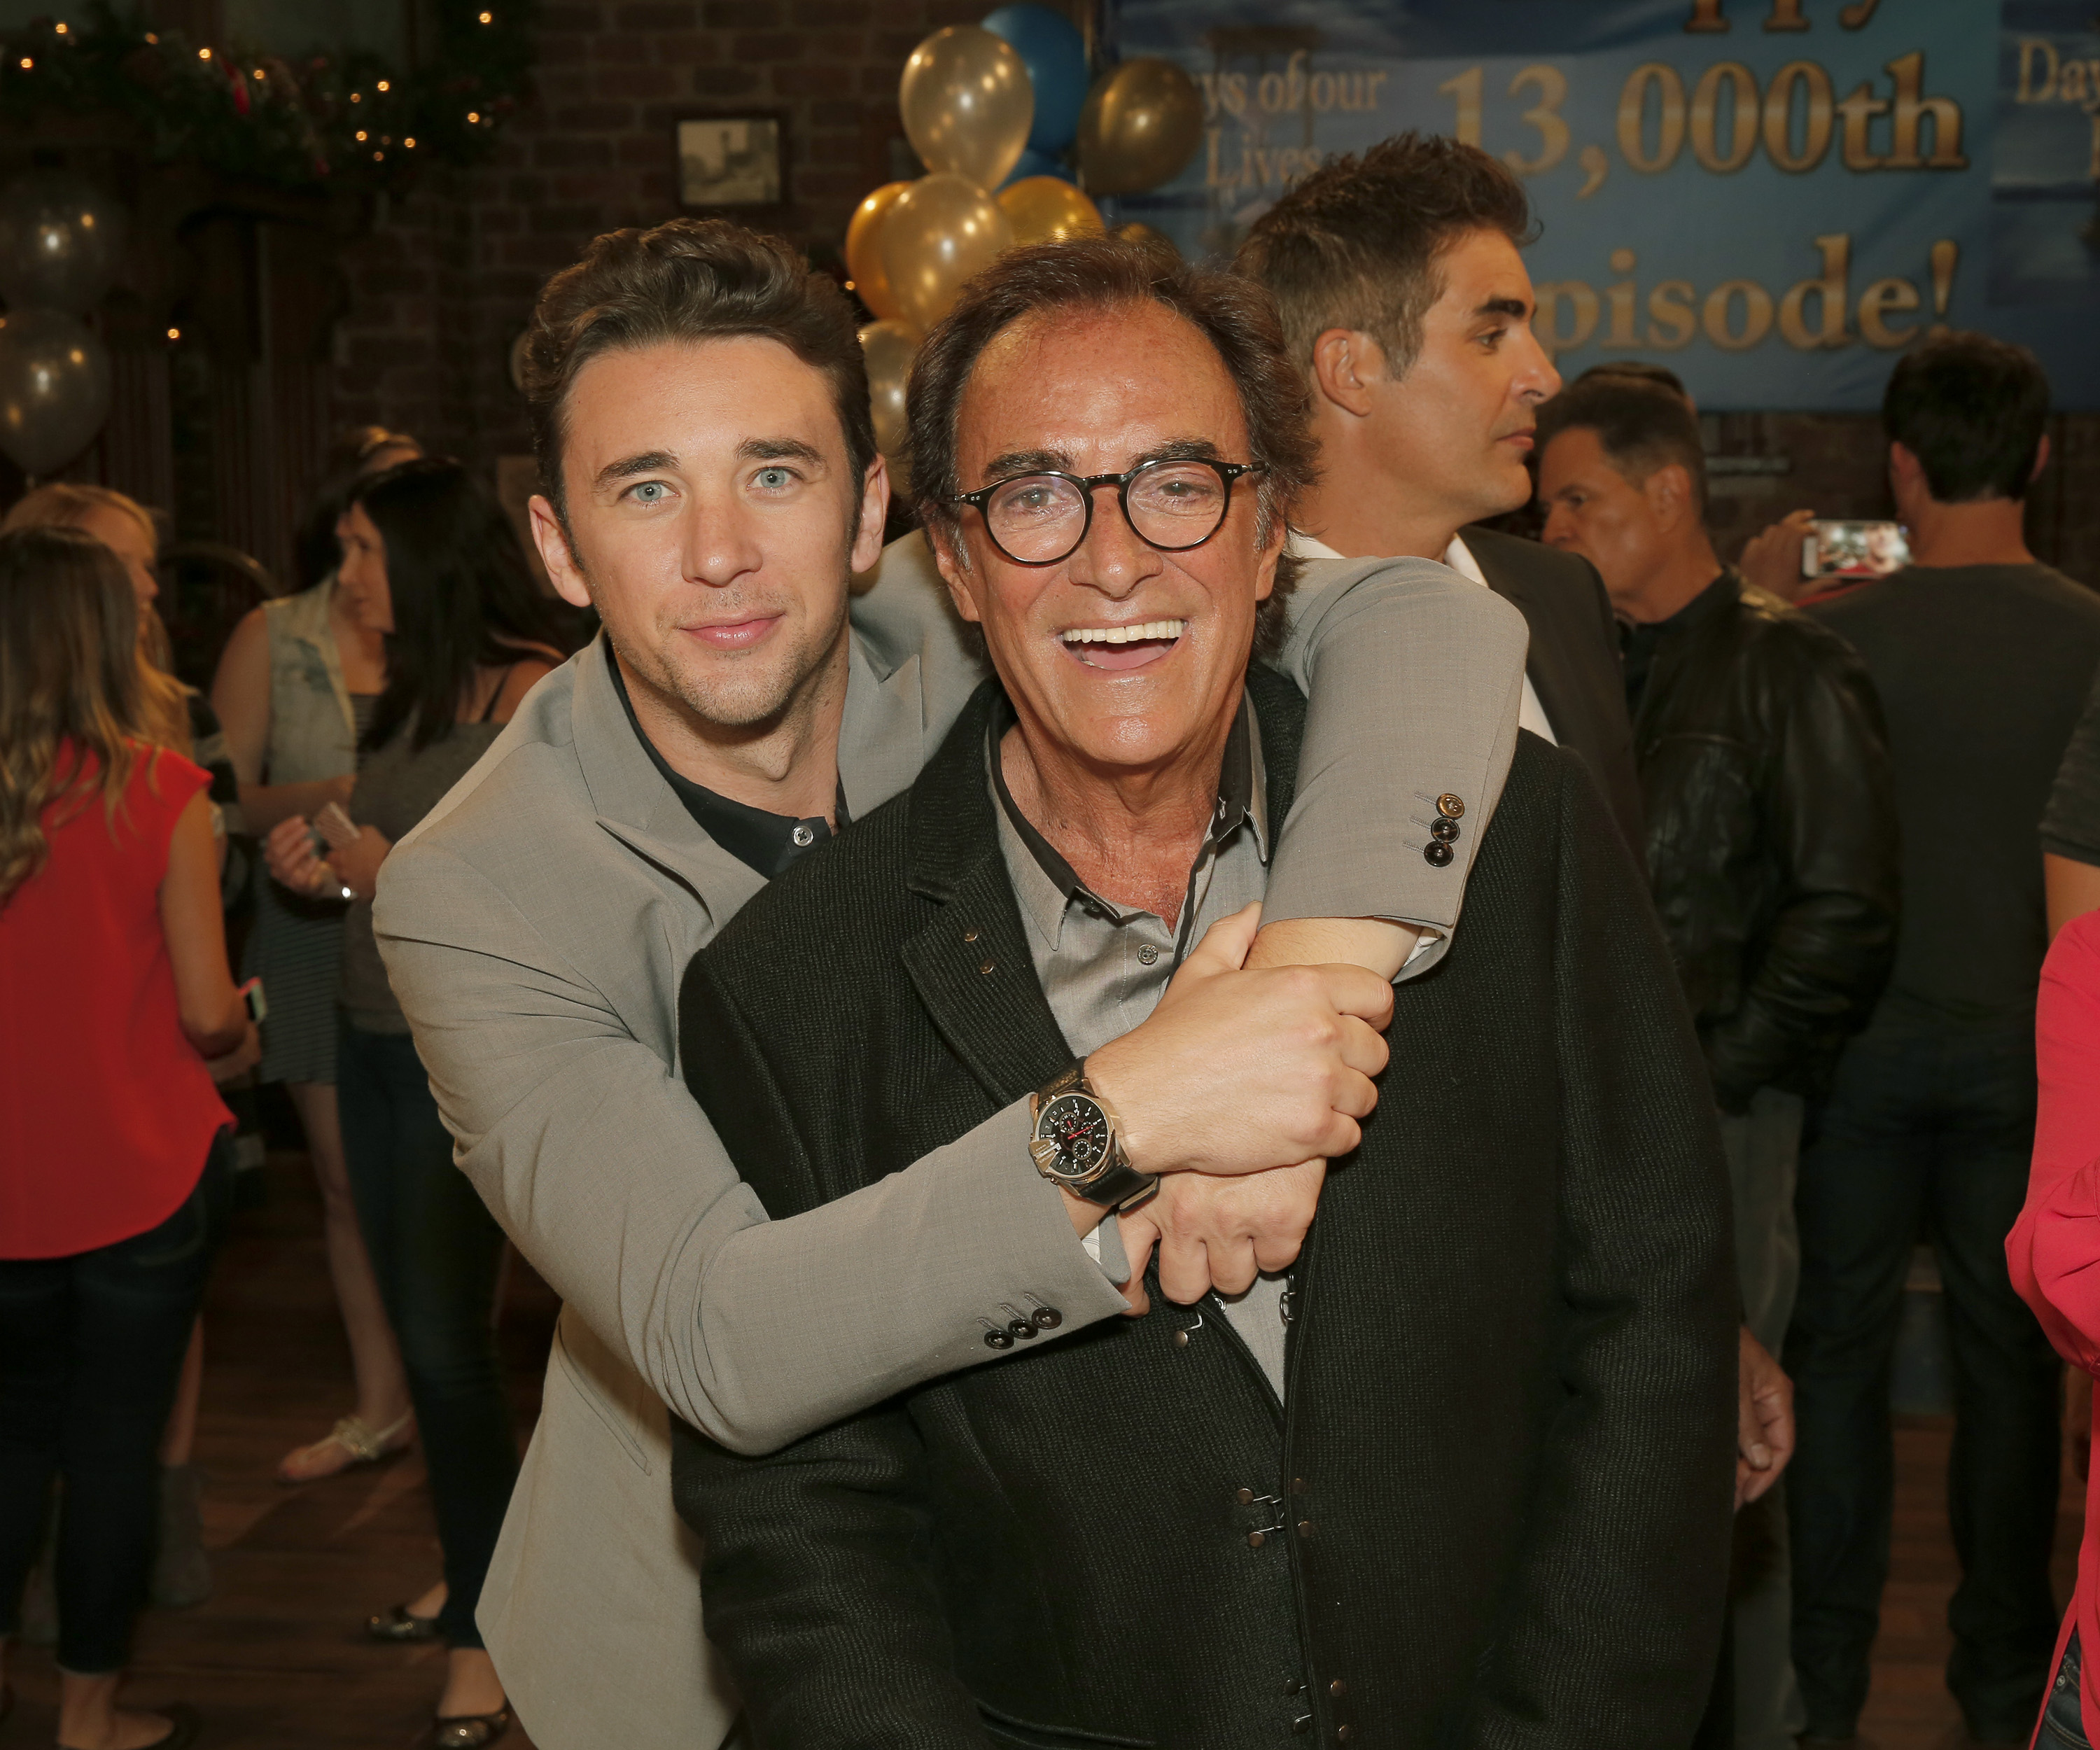 DAYS OF OUR LIVES -- 13,000th Episode Celebration -- Pictured: (l-r) Billy Flynn, Thaao Penghlis -- (Photo by: Chris Haston/NBC/NBCU Photo Bank via Getty Images)